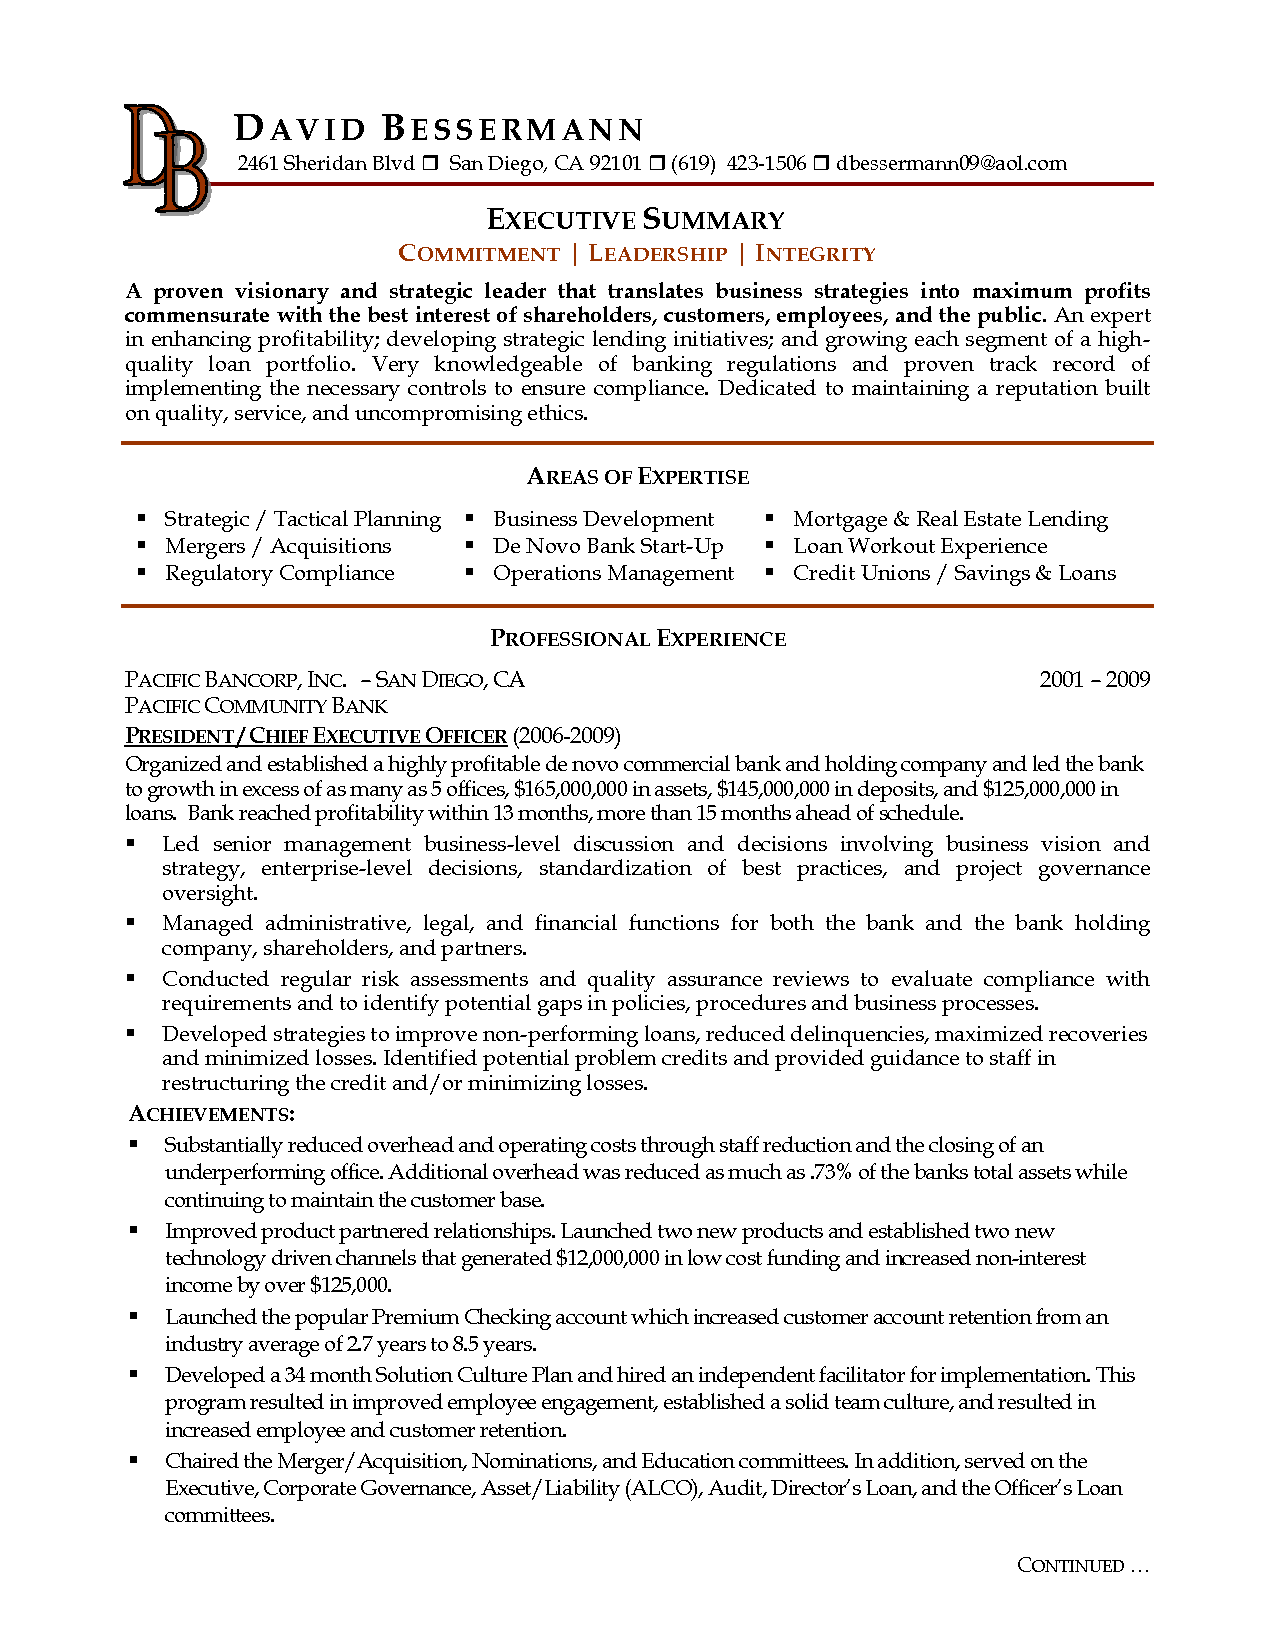 Developer Resume Examples Resume Formats Format Software Samples Cover Letter Related Free